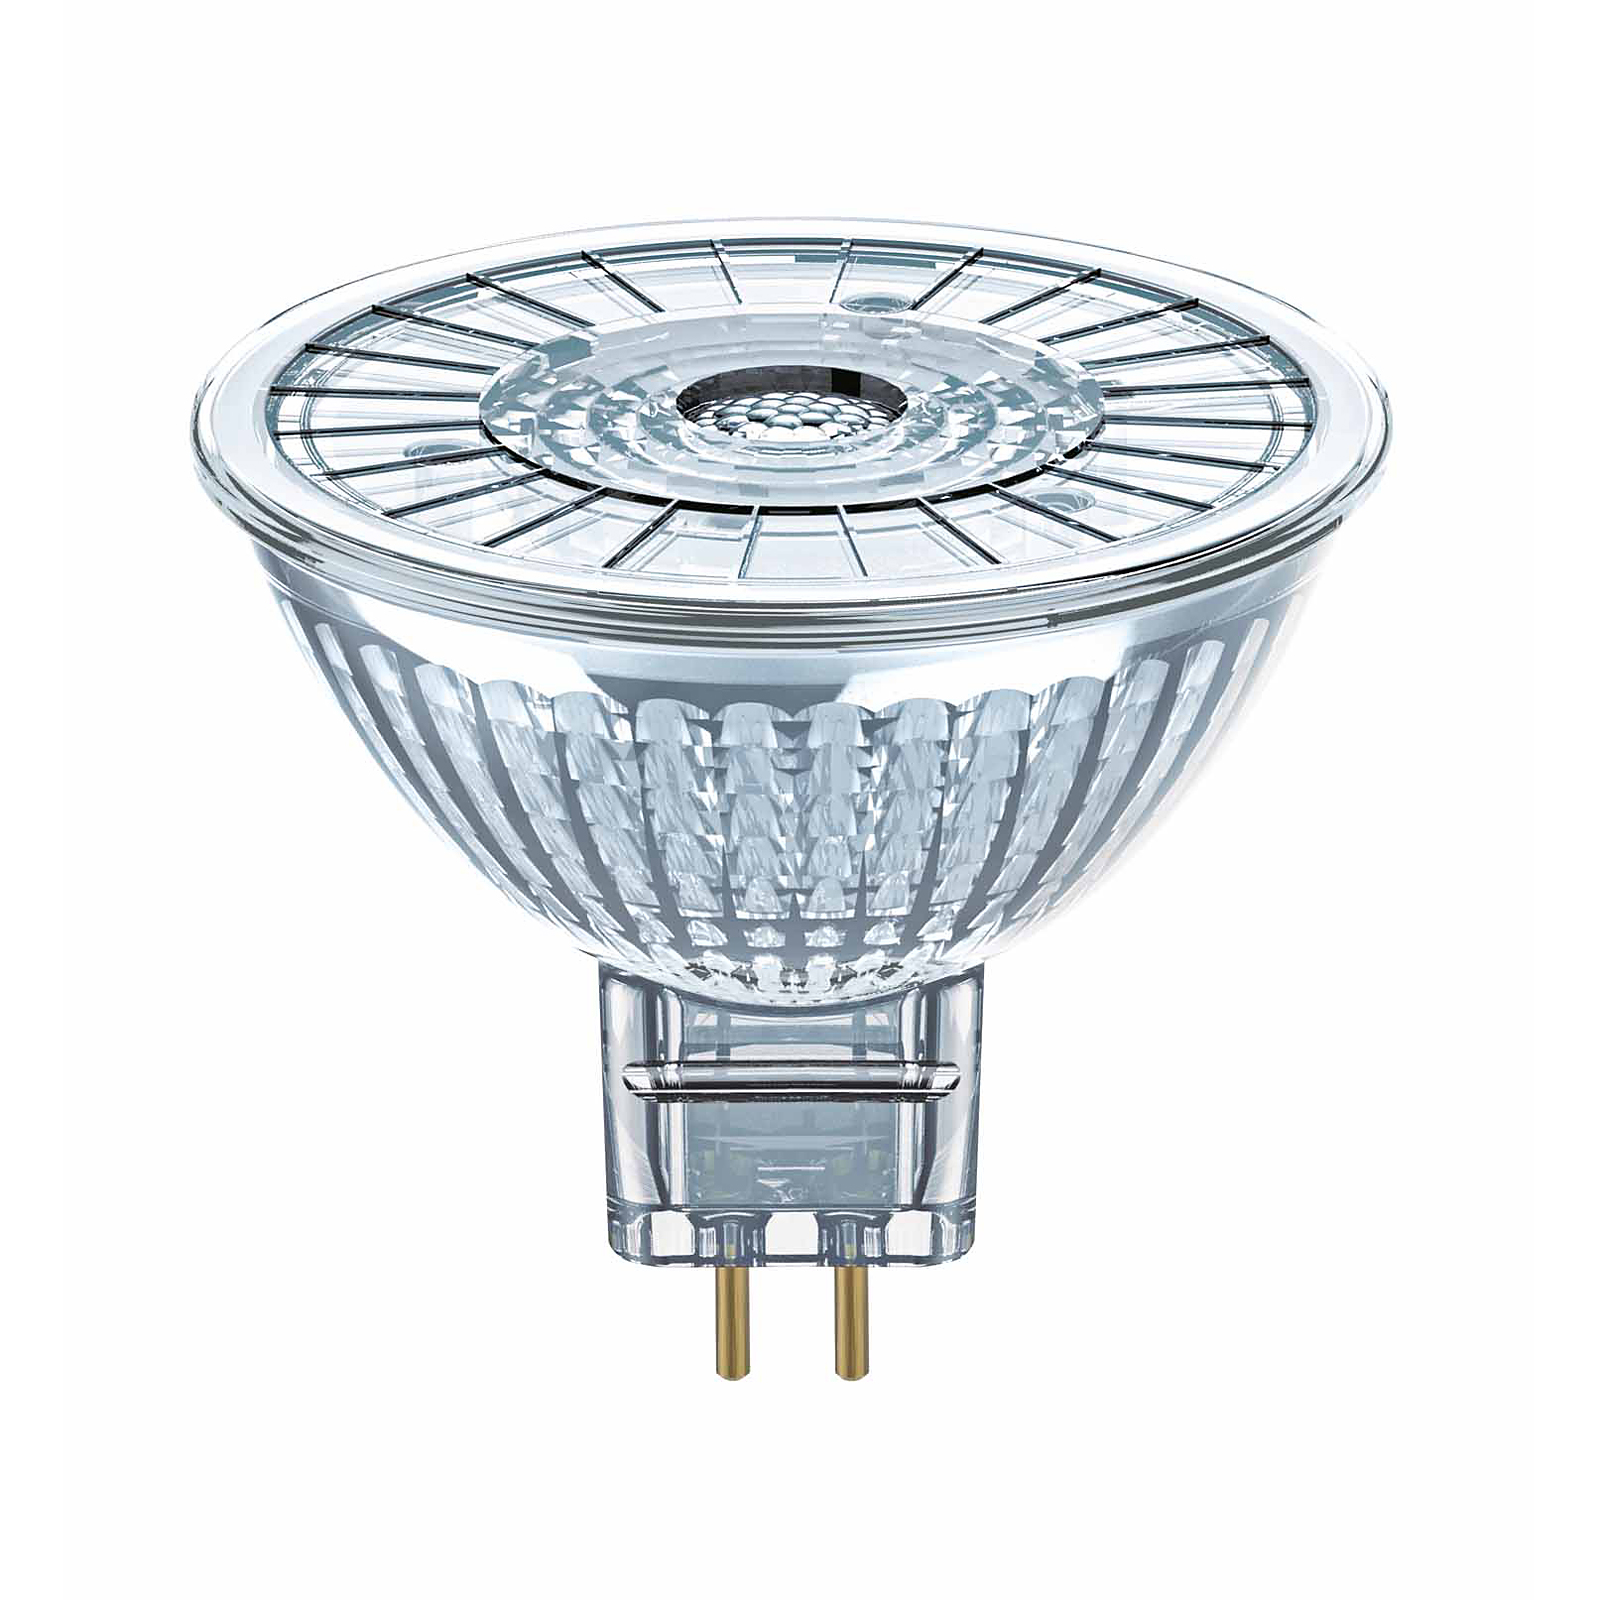 10985-OSRAM-LED-STAR-MR16-GU5-3-5-Watt-wie-35-Watt-350-Lumen-36-4000-Kelvin-1 Schöne 3 5 Watt Led Entspricht Dekorationen